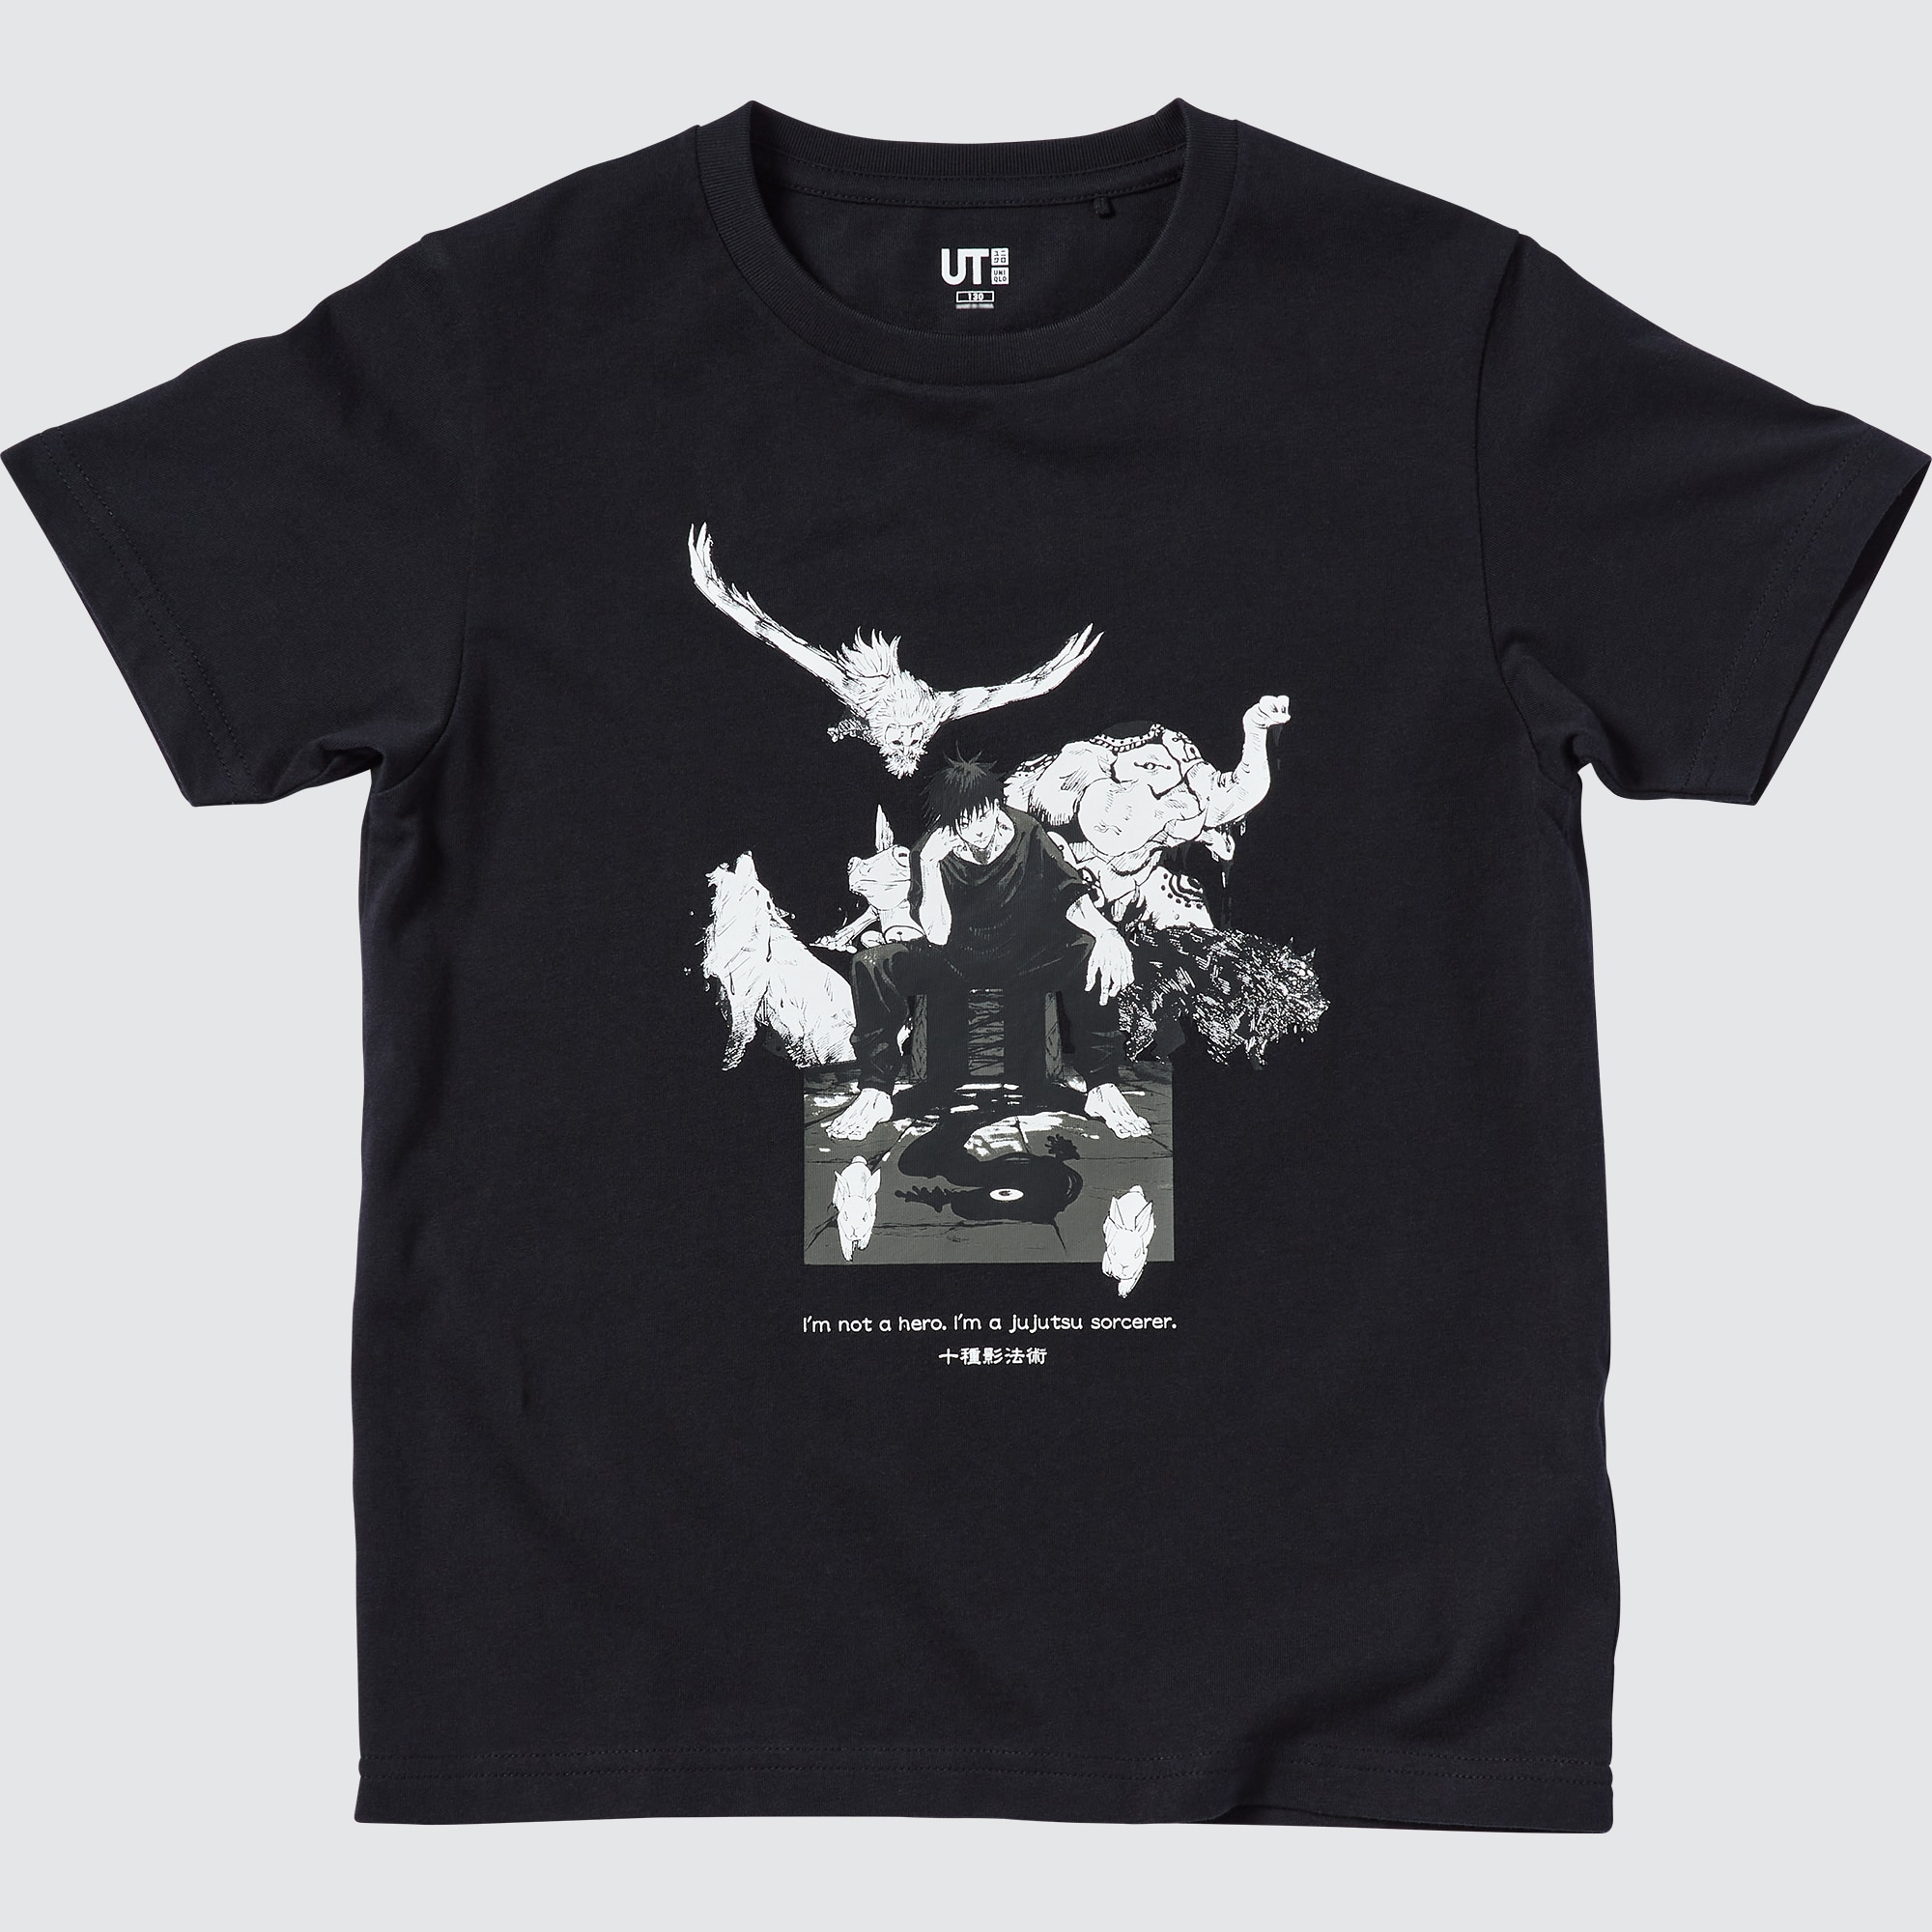 UNIQLO is dropping a Jujutsu Kaisen T-shirt collection in June 24